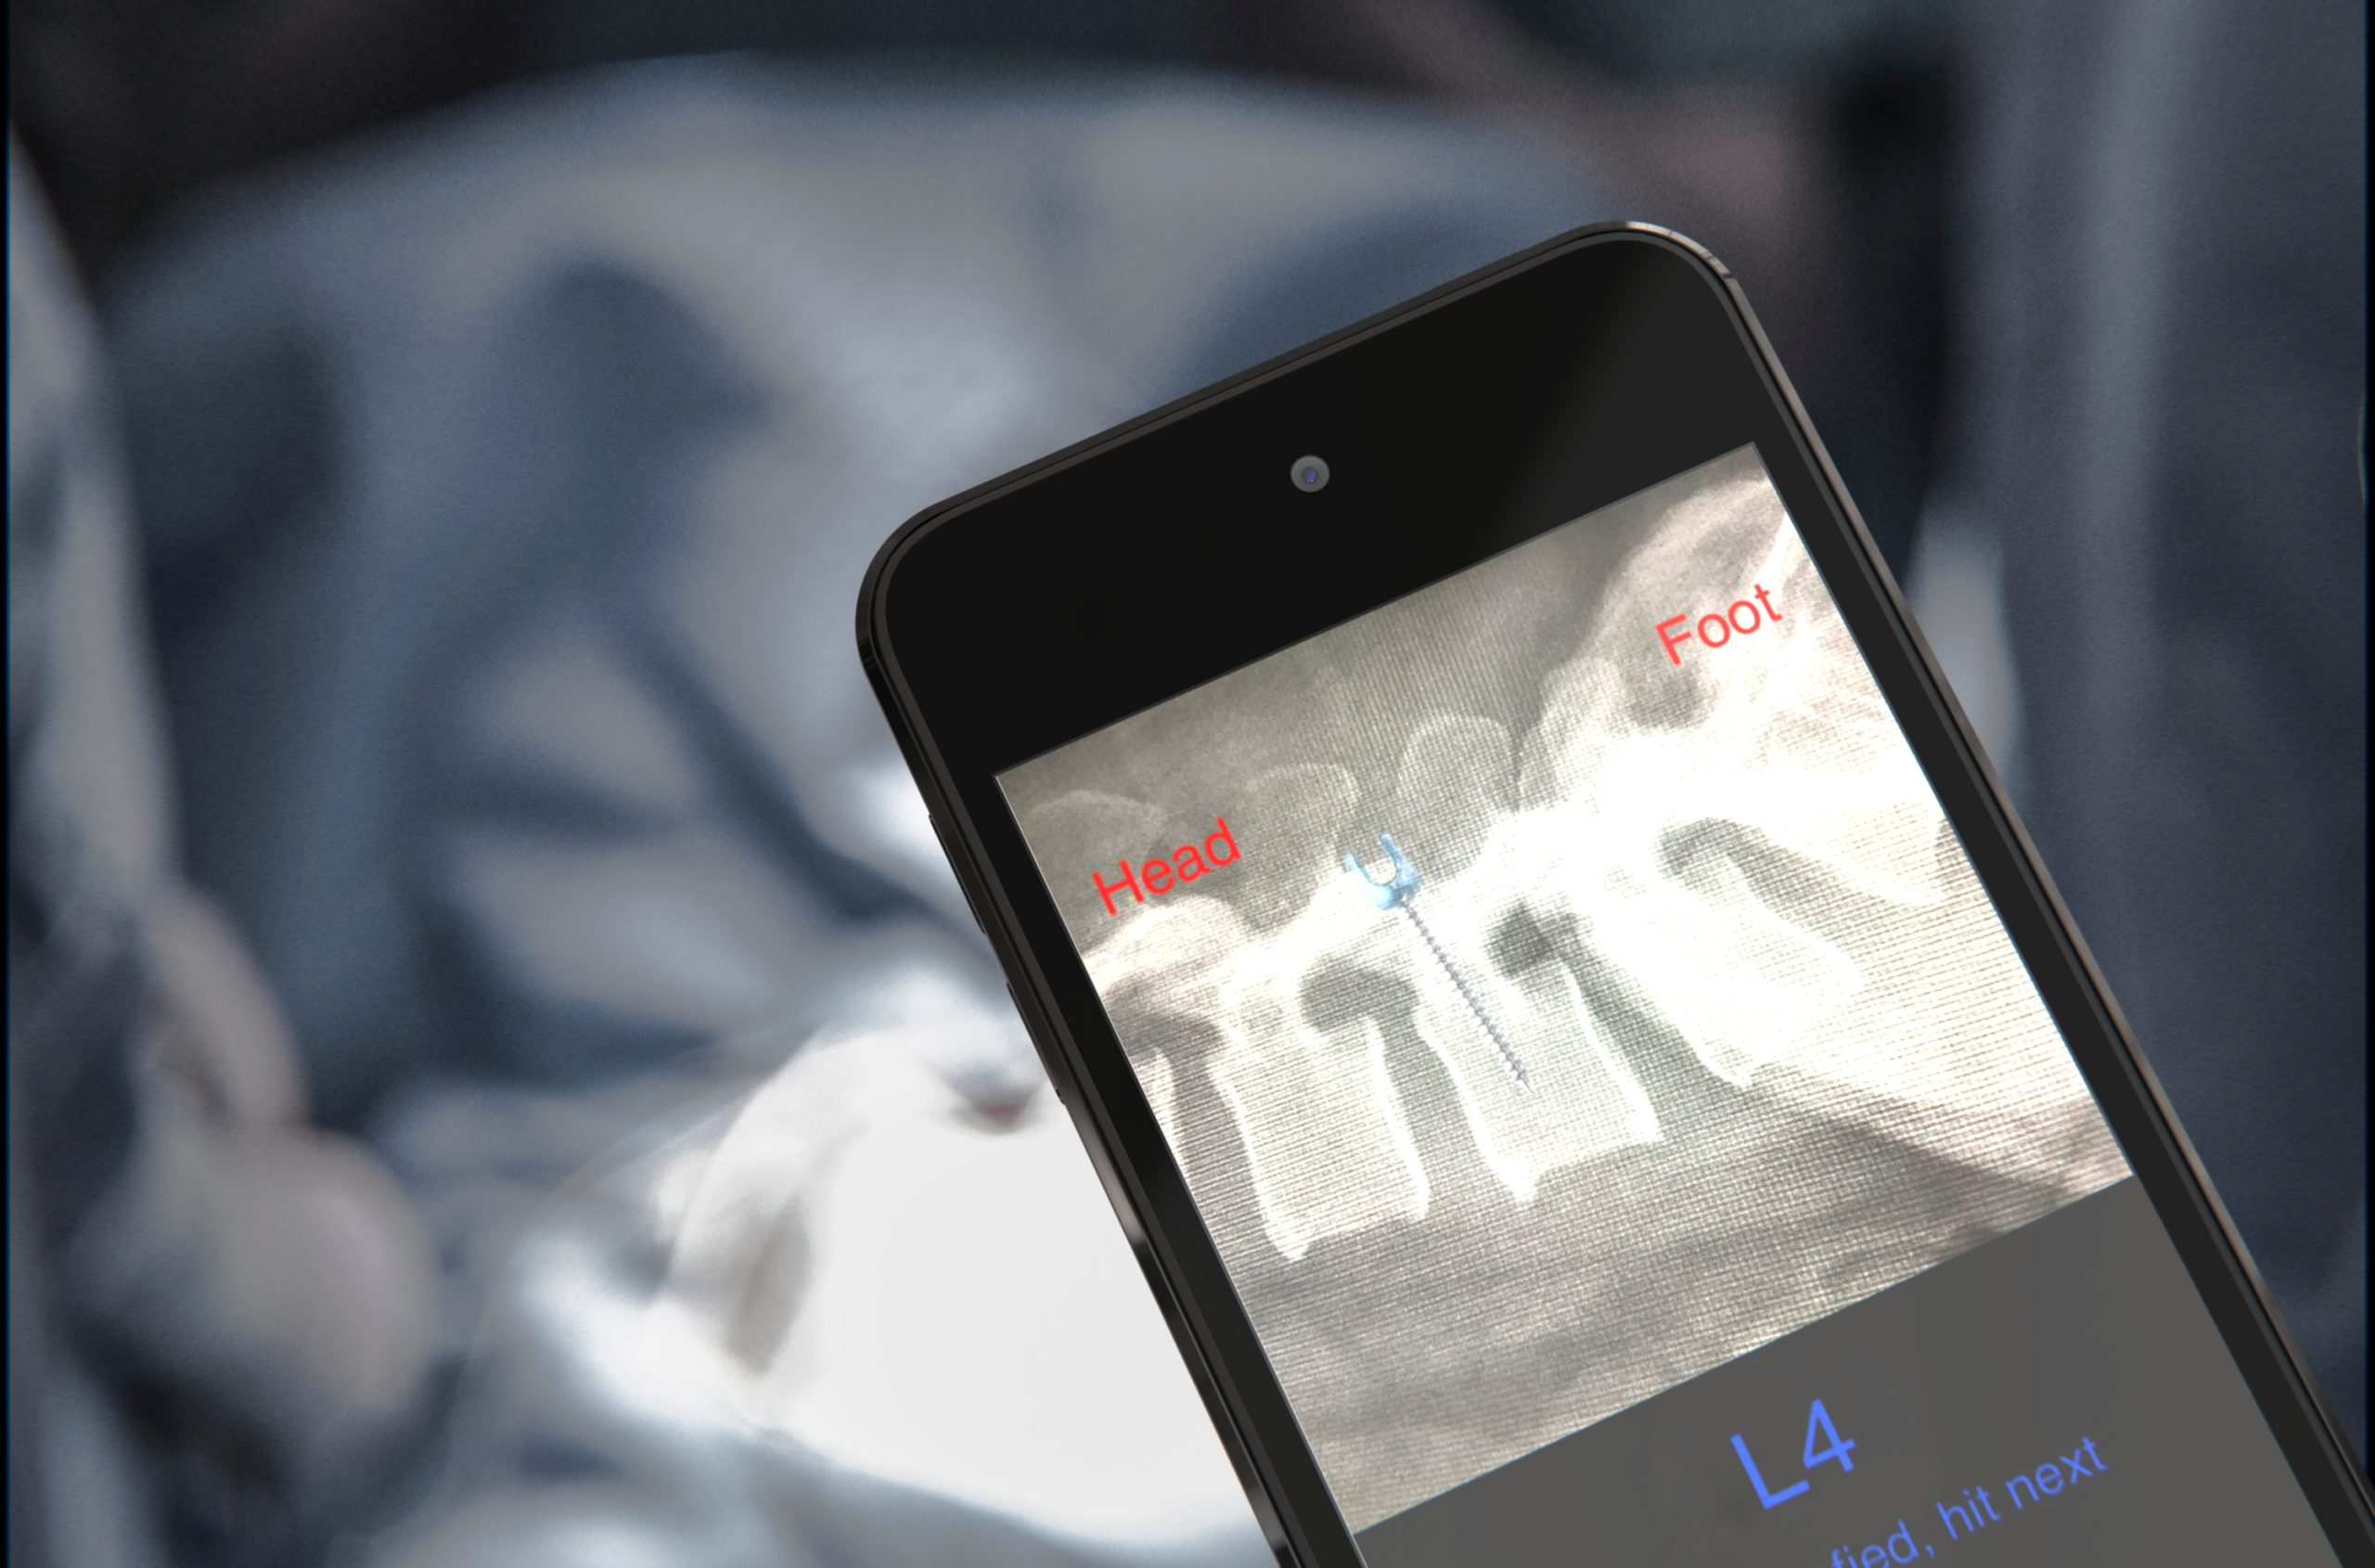 A screen of the navigation feature during surgery